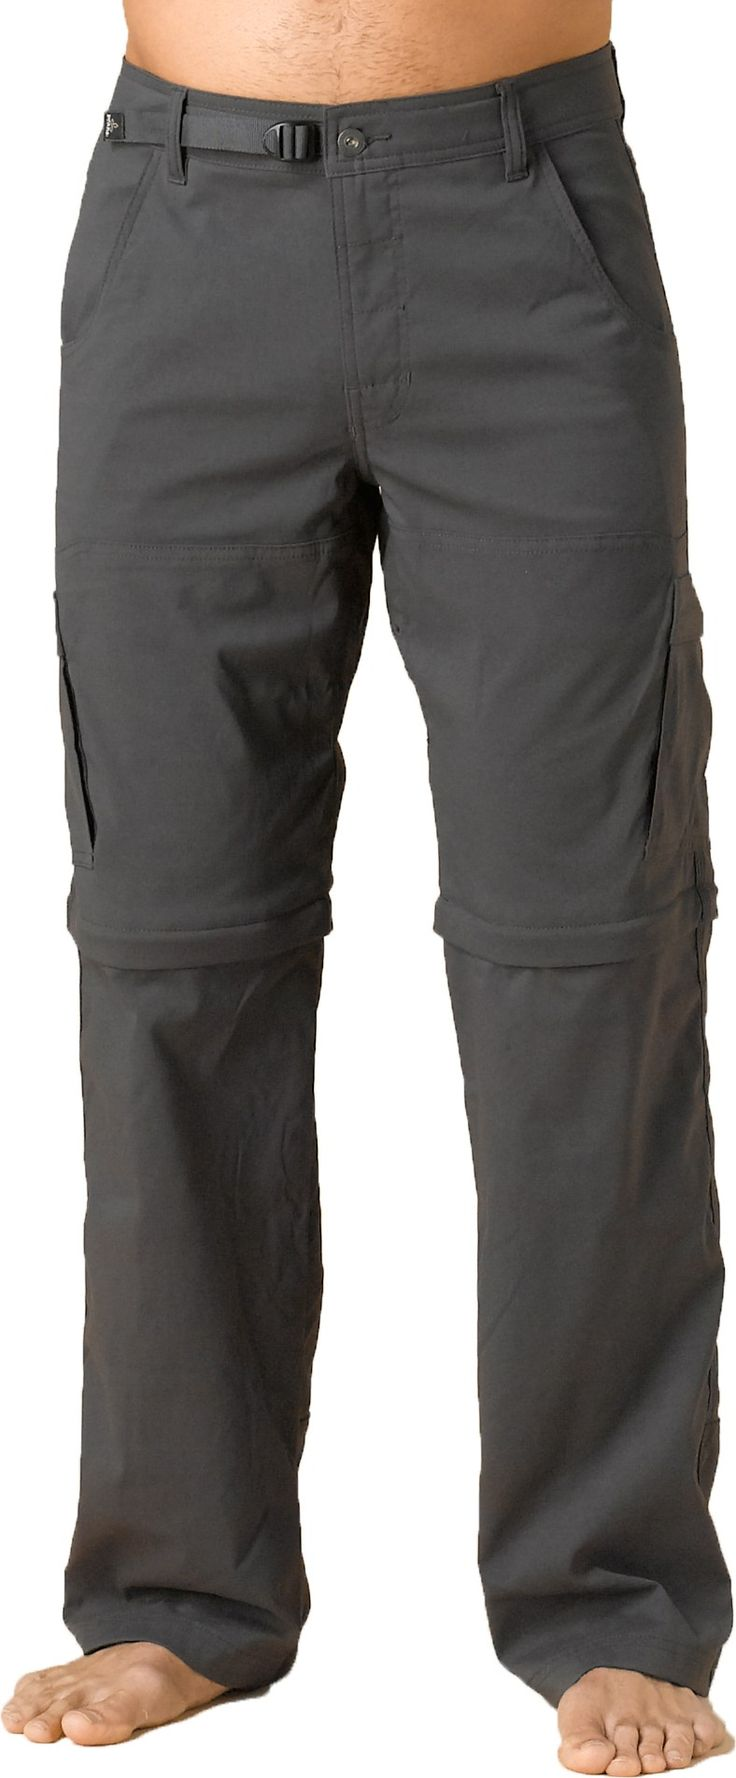 Prana Stretch Zion Convertible Pants. Wear these while hiking, rock climbing or for movement.